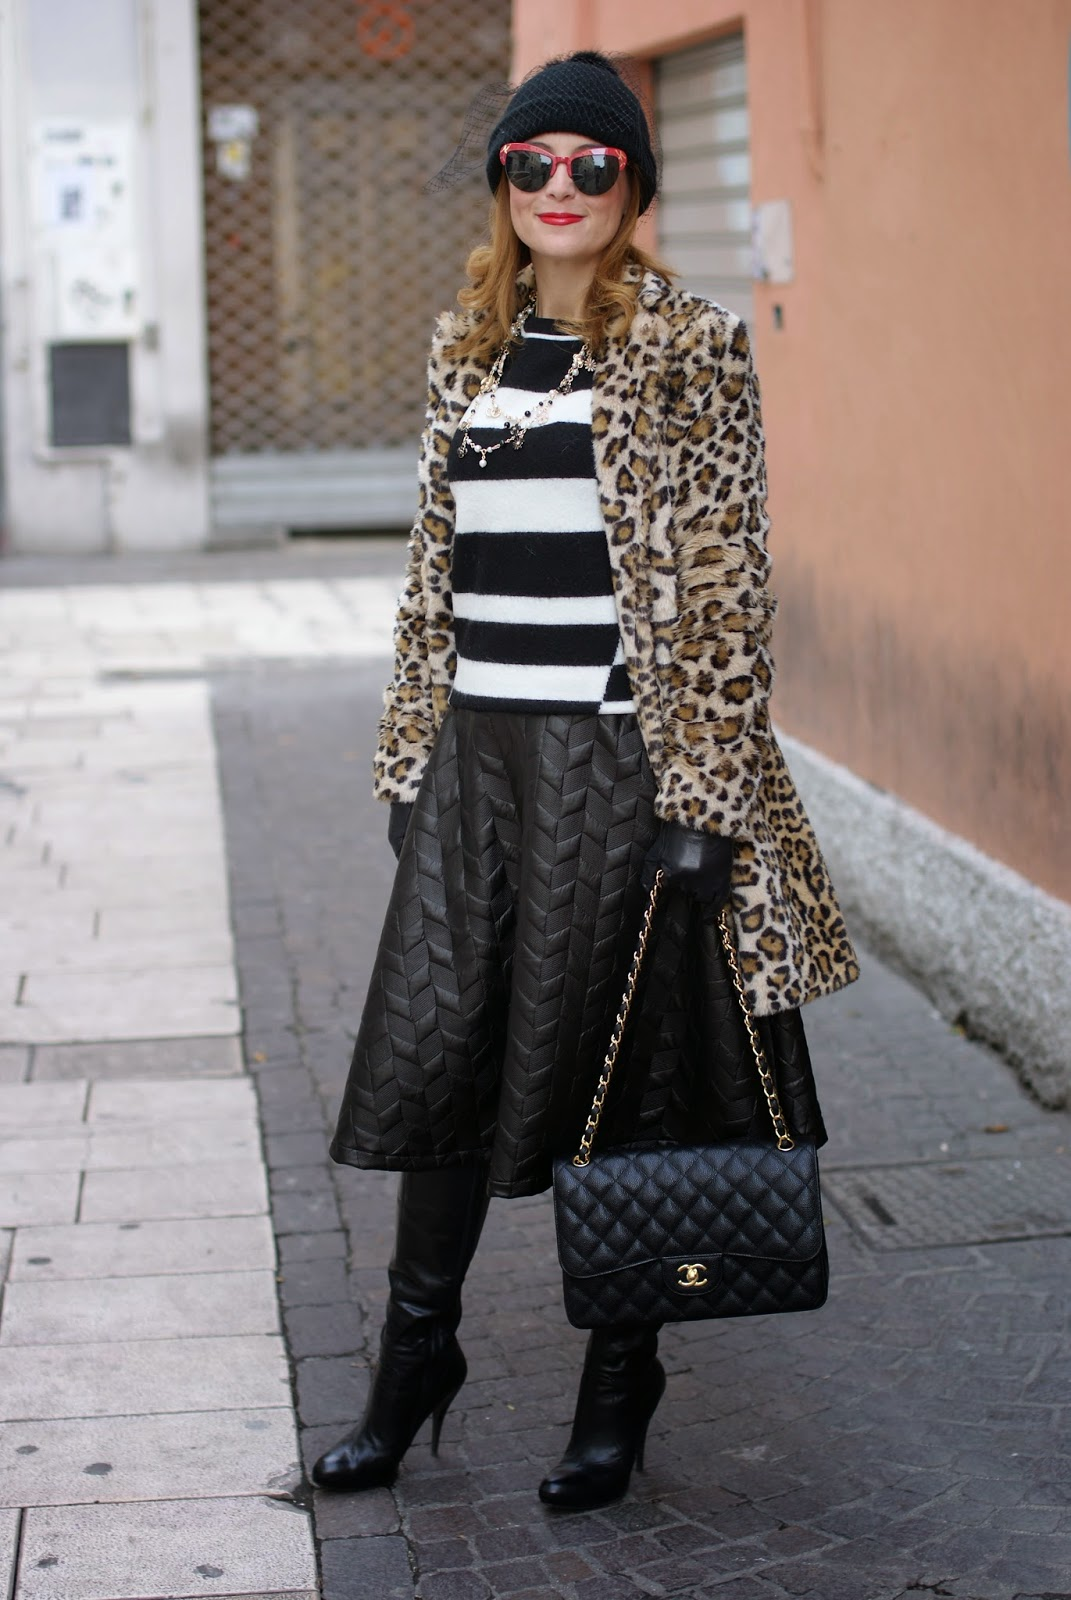 Zara leopard print faux fur coat with veiled beanie hat and Chanel 2.55 classic flap bag on Fashion and Cookies fashion blogger, cappello con veletta Asos